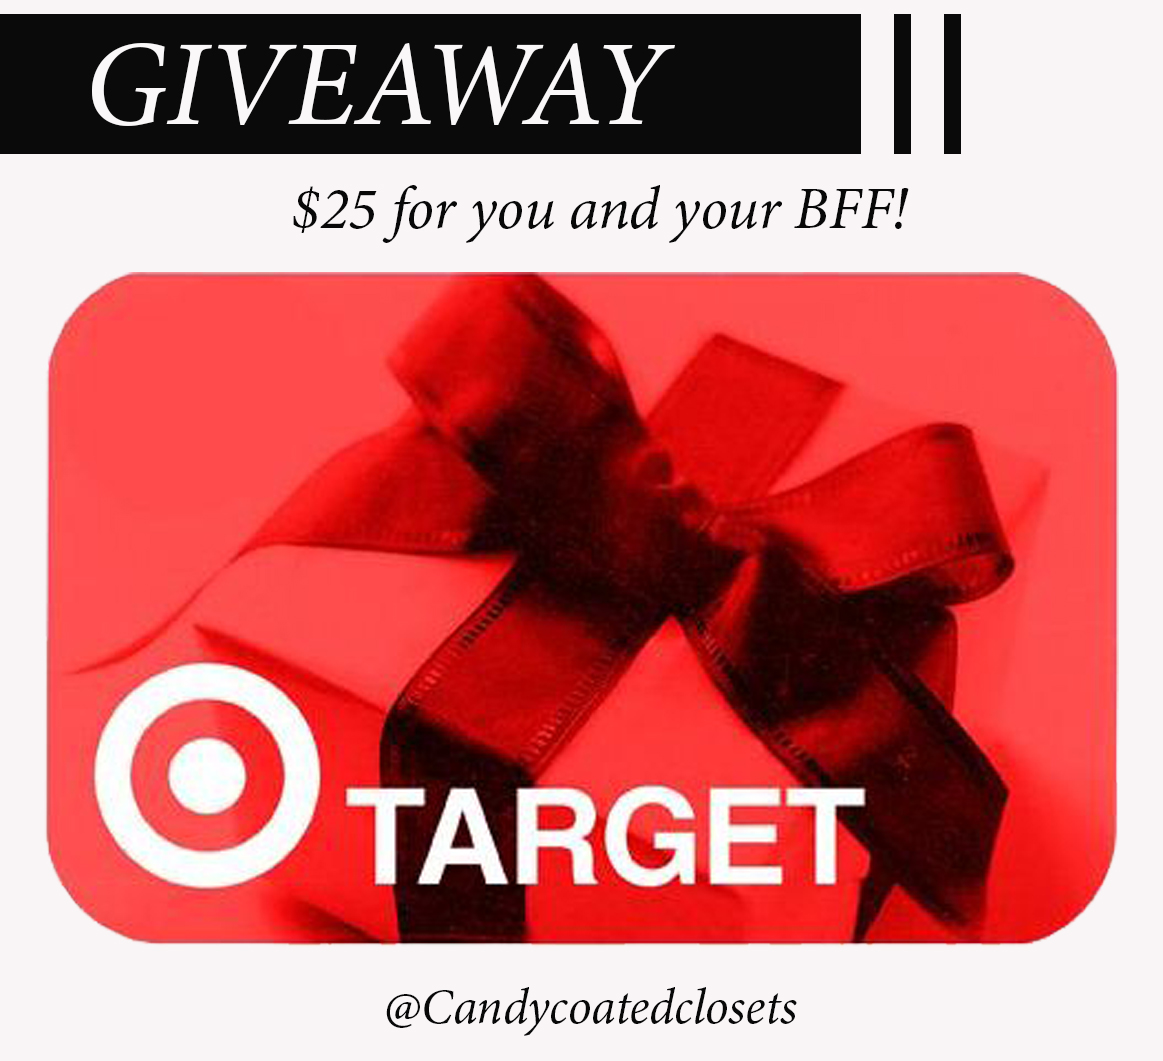 Target Giveaway Photoshop